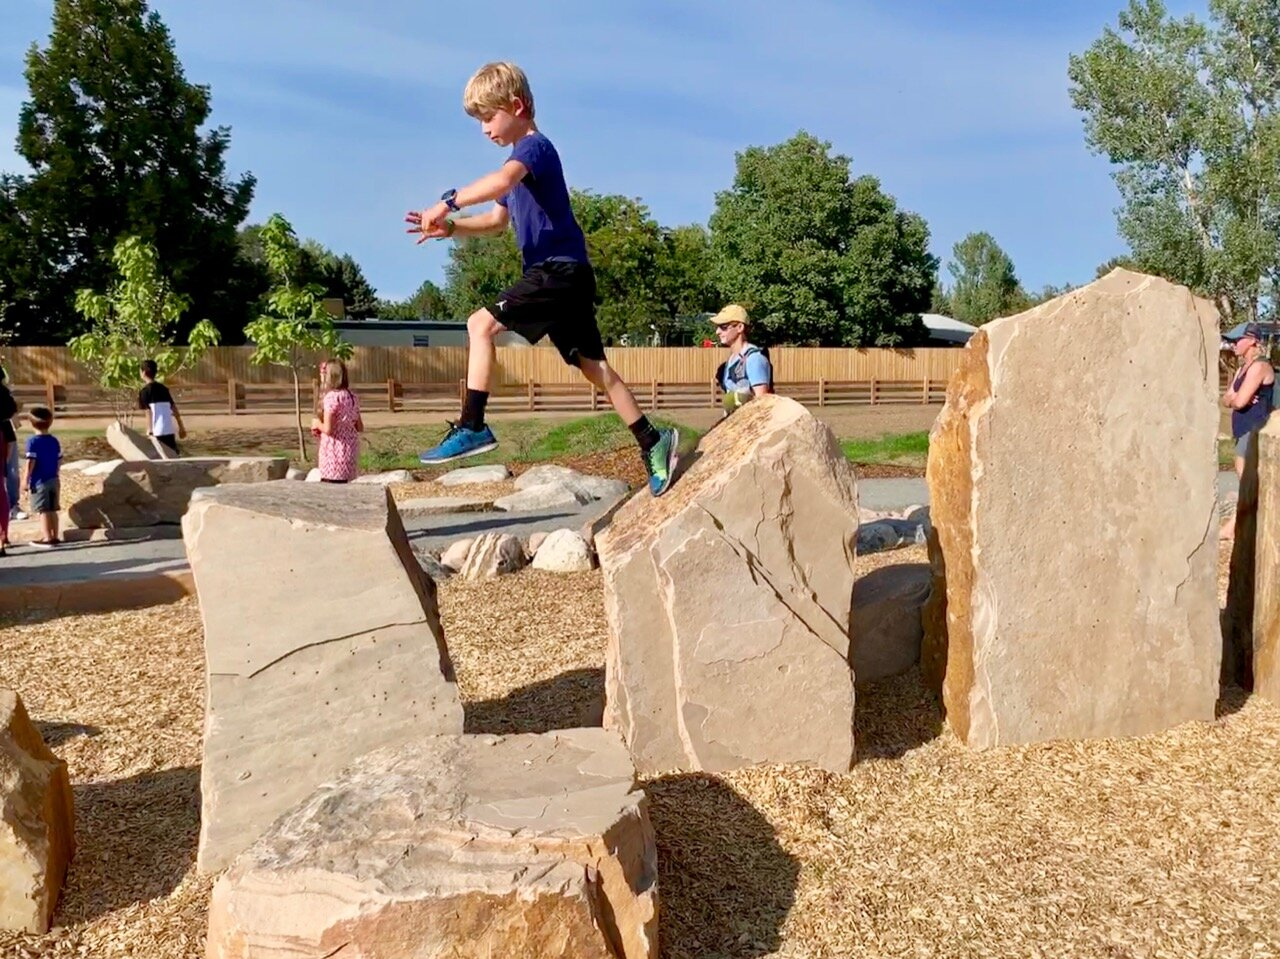 Kids jumping across boulders in the play area